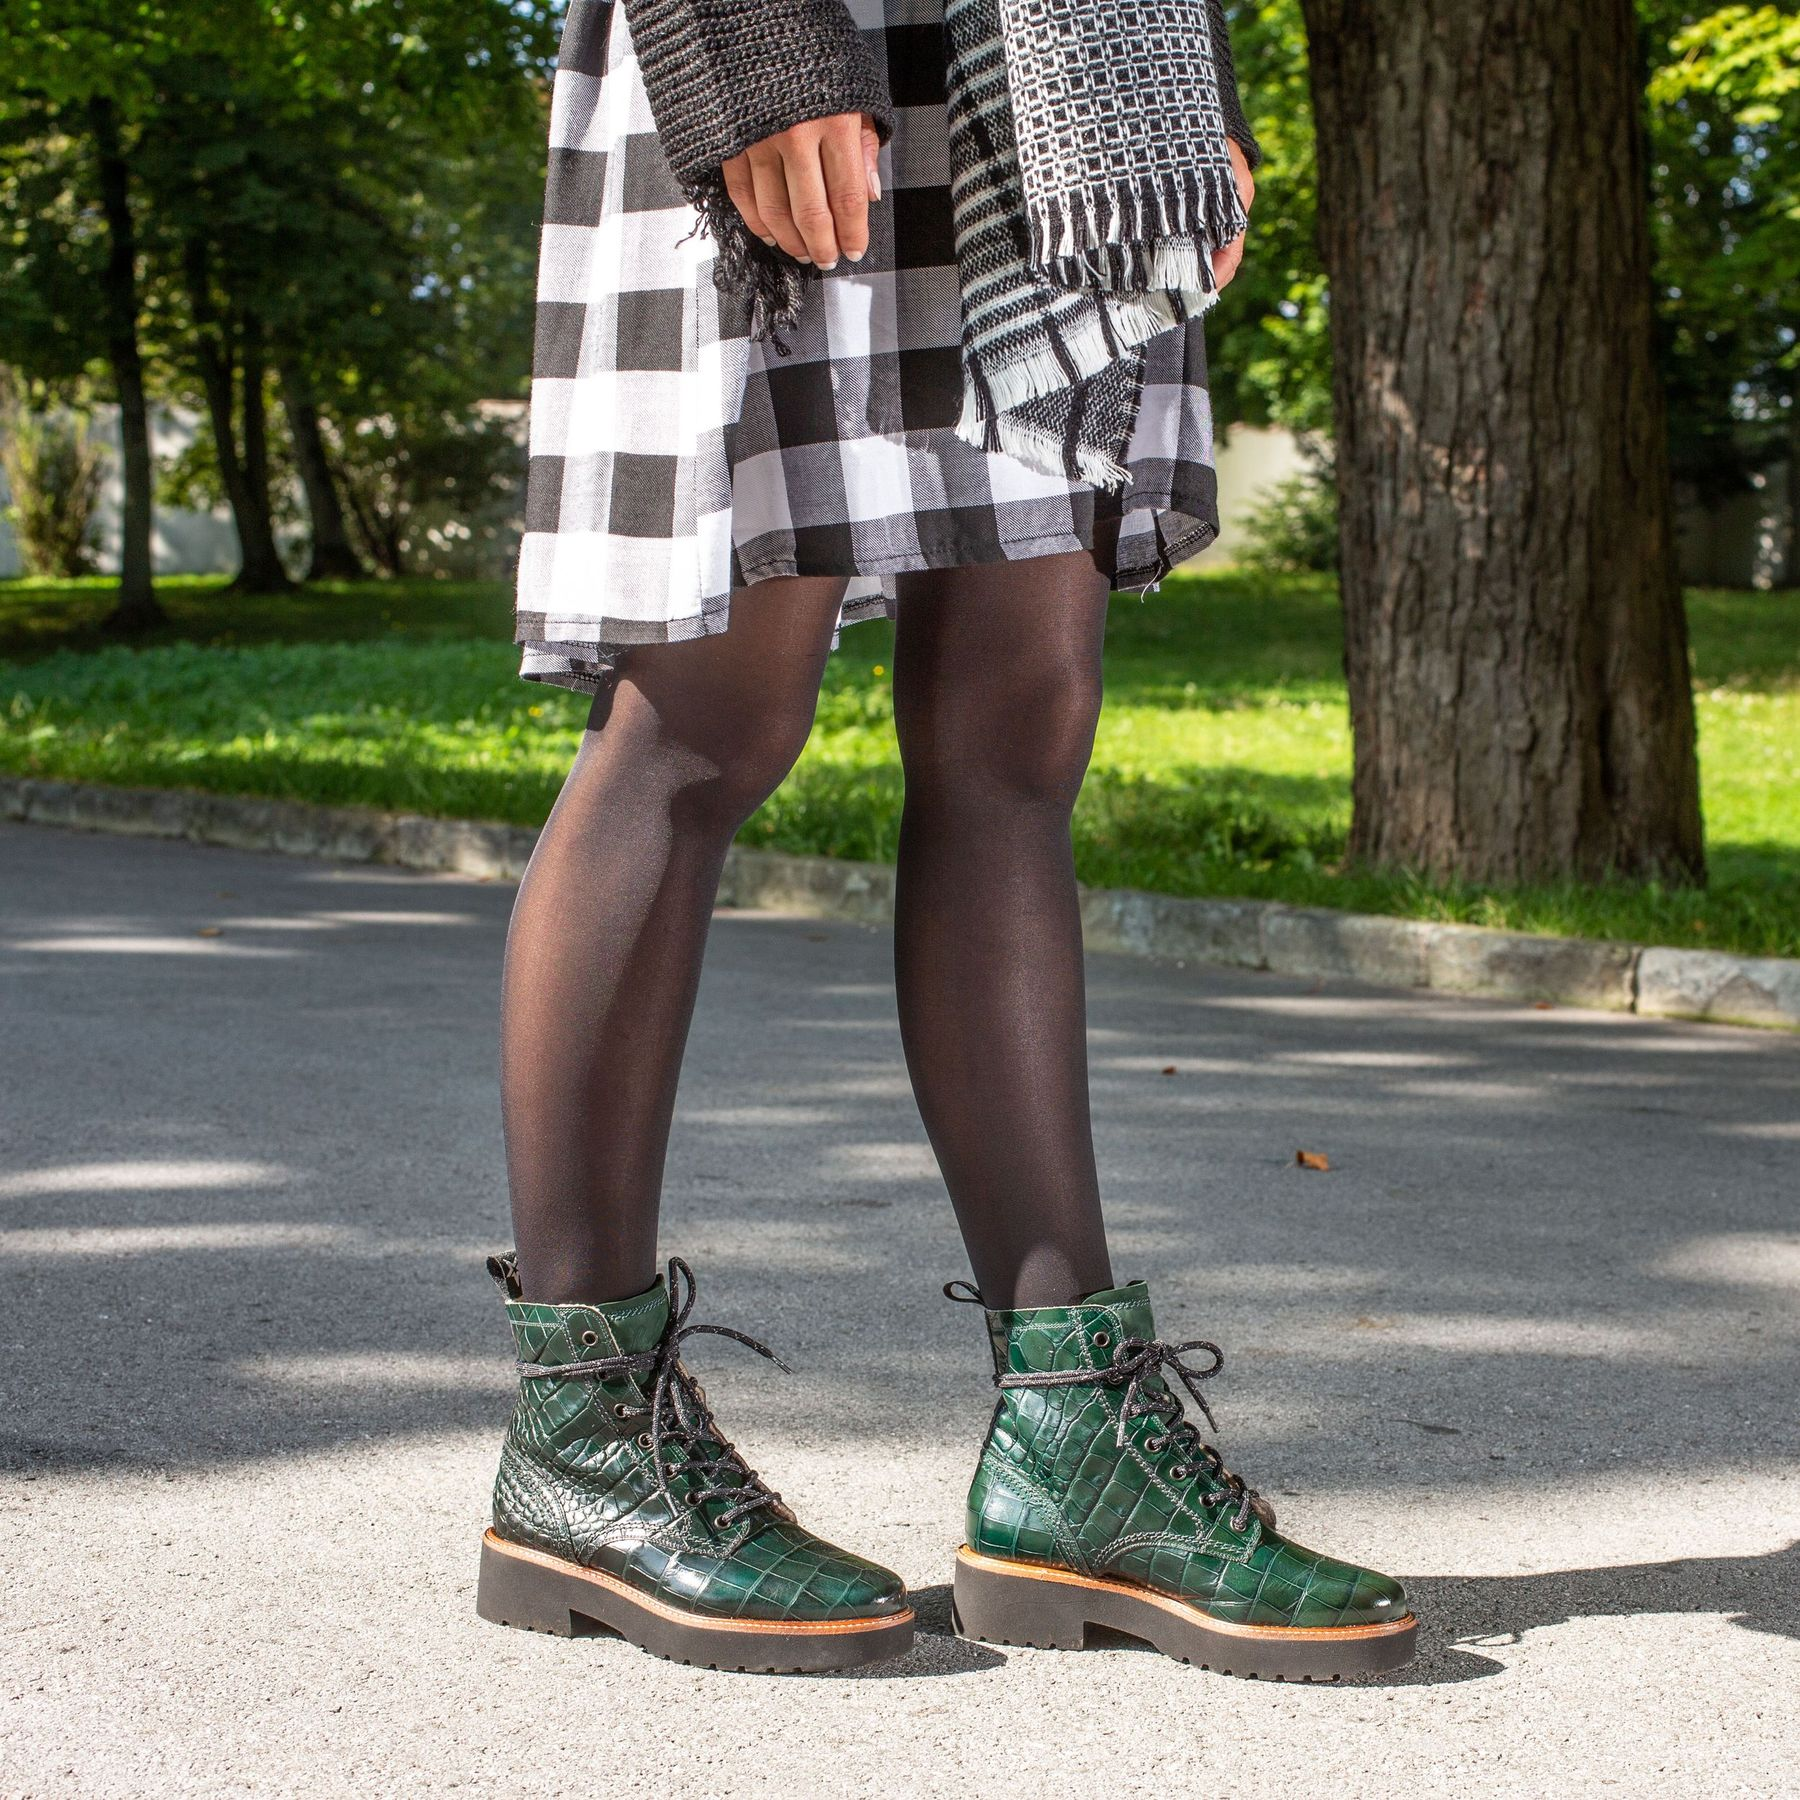 Lace-up booties with warm lining in